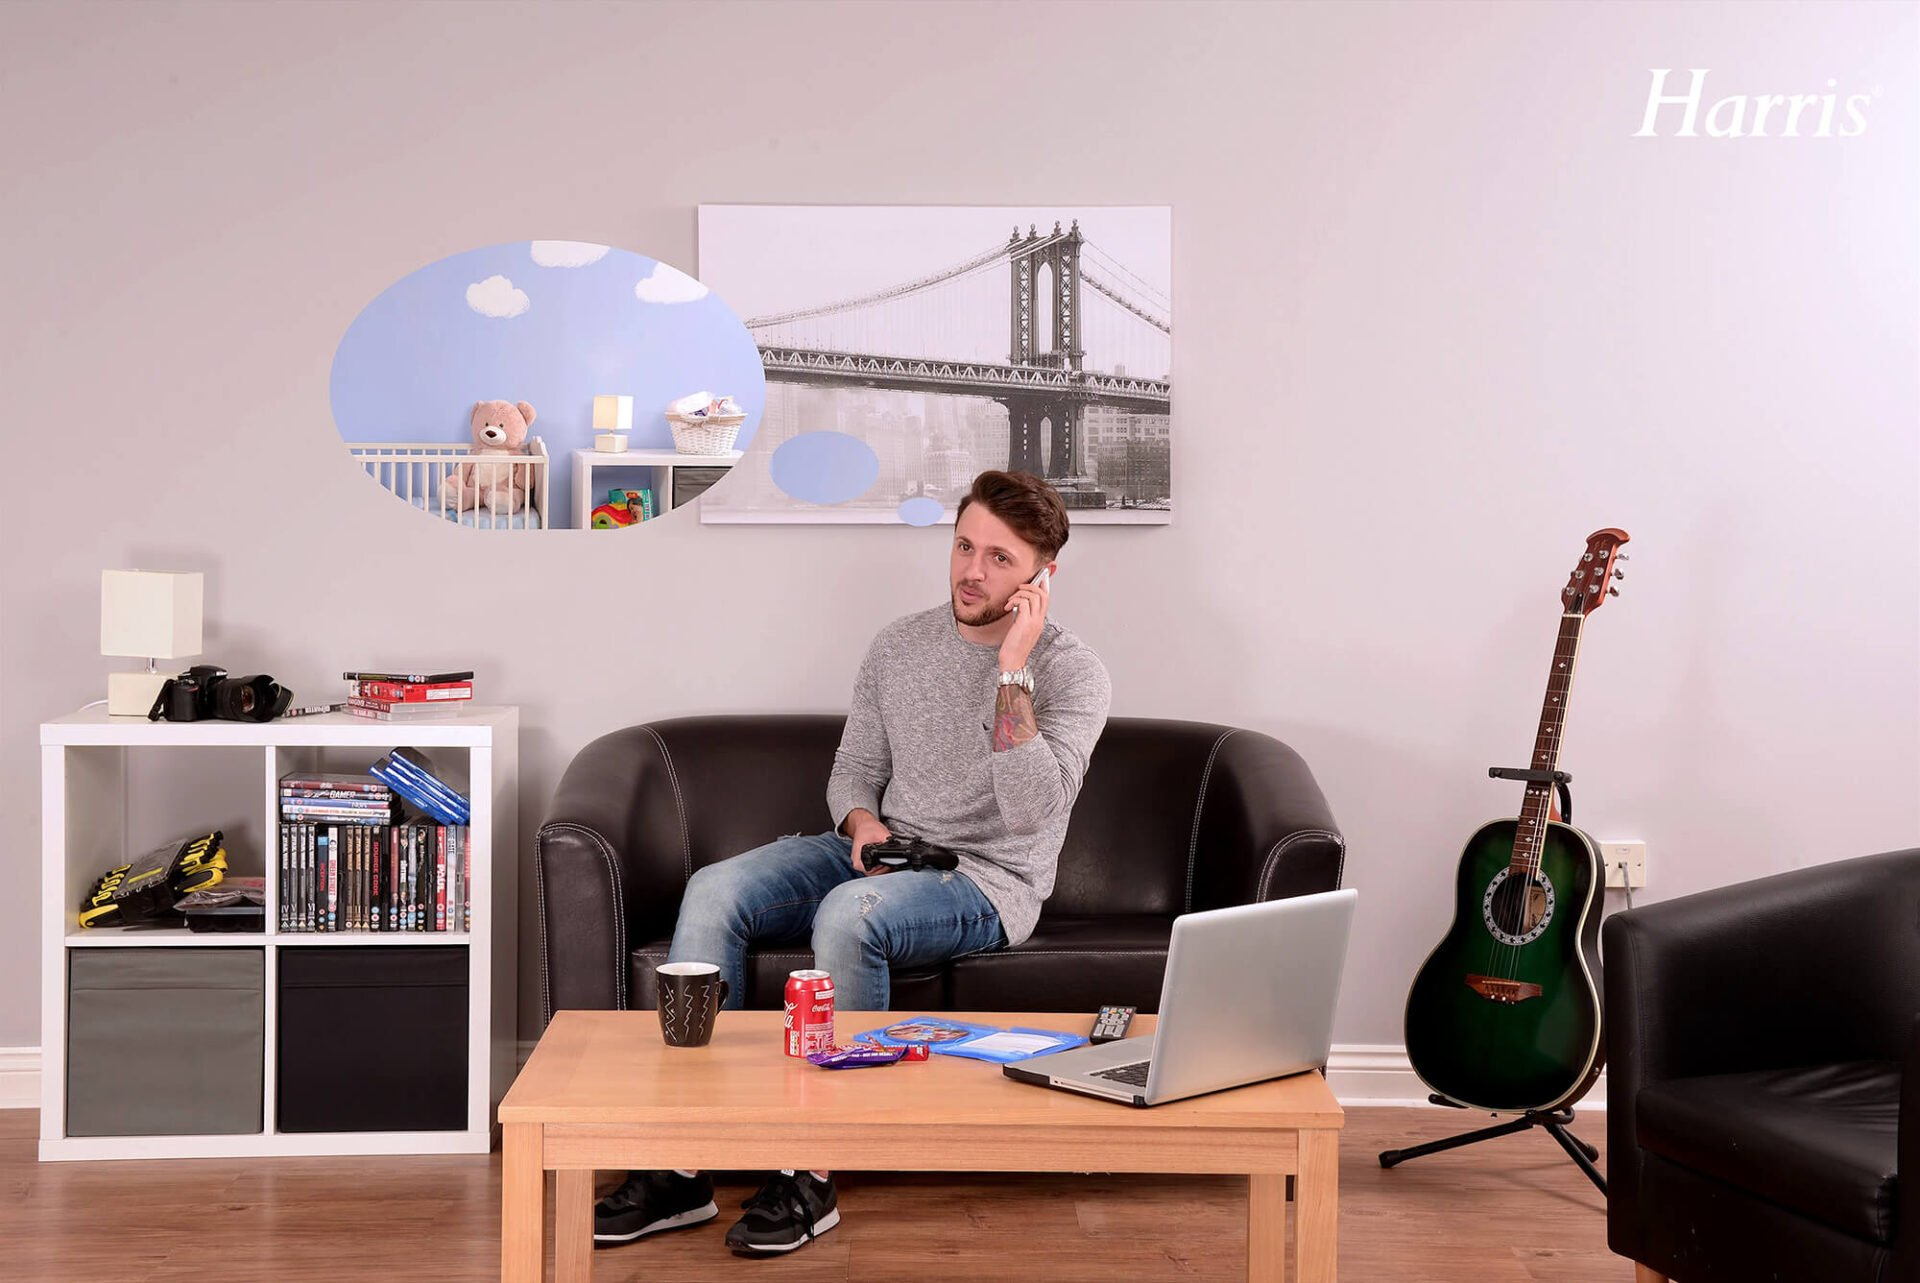 Transform your Man Cave with Harris